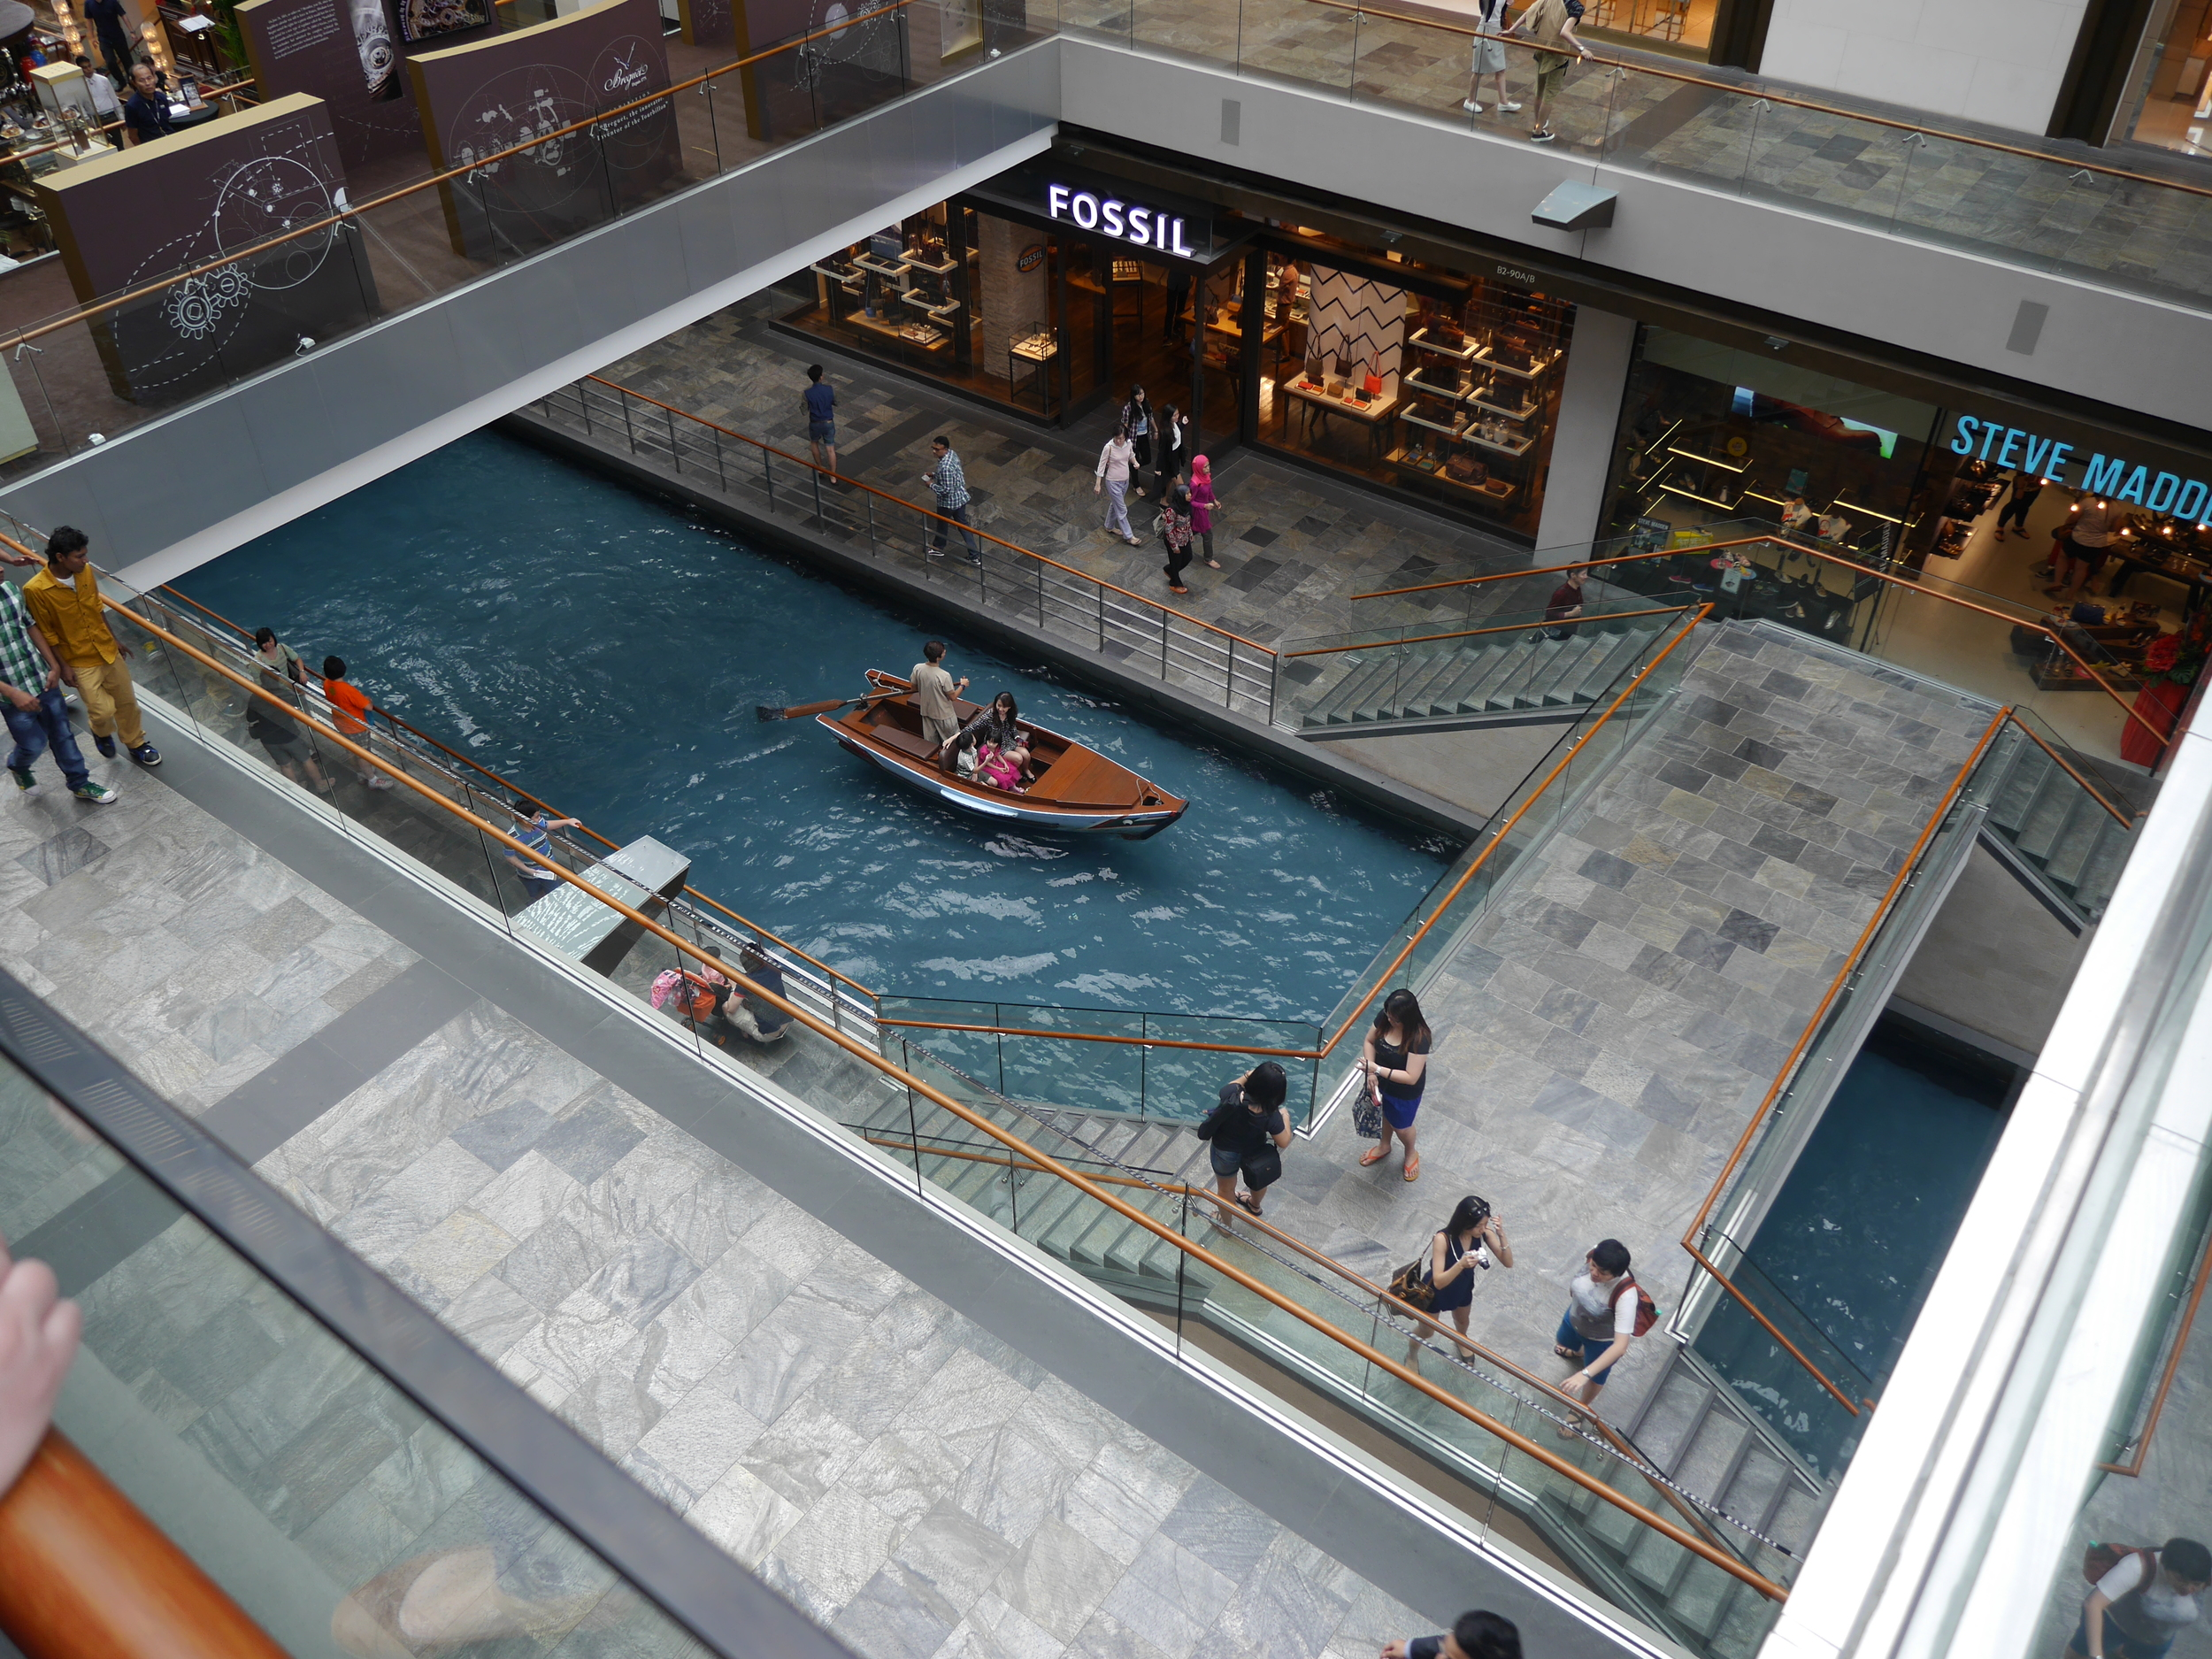 Does your local mall have gondolas?